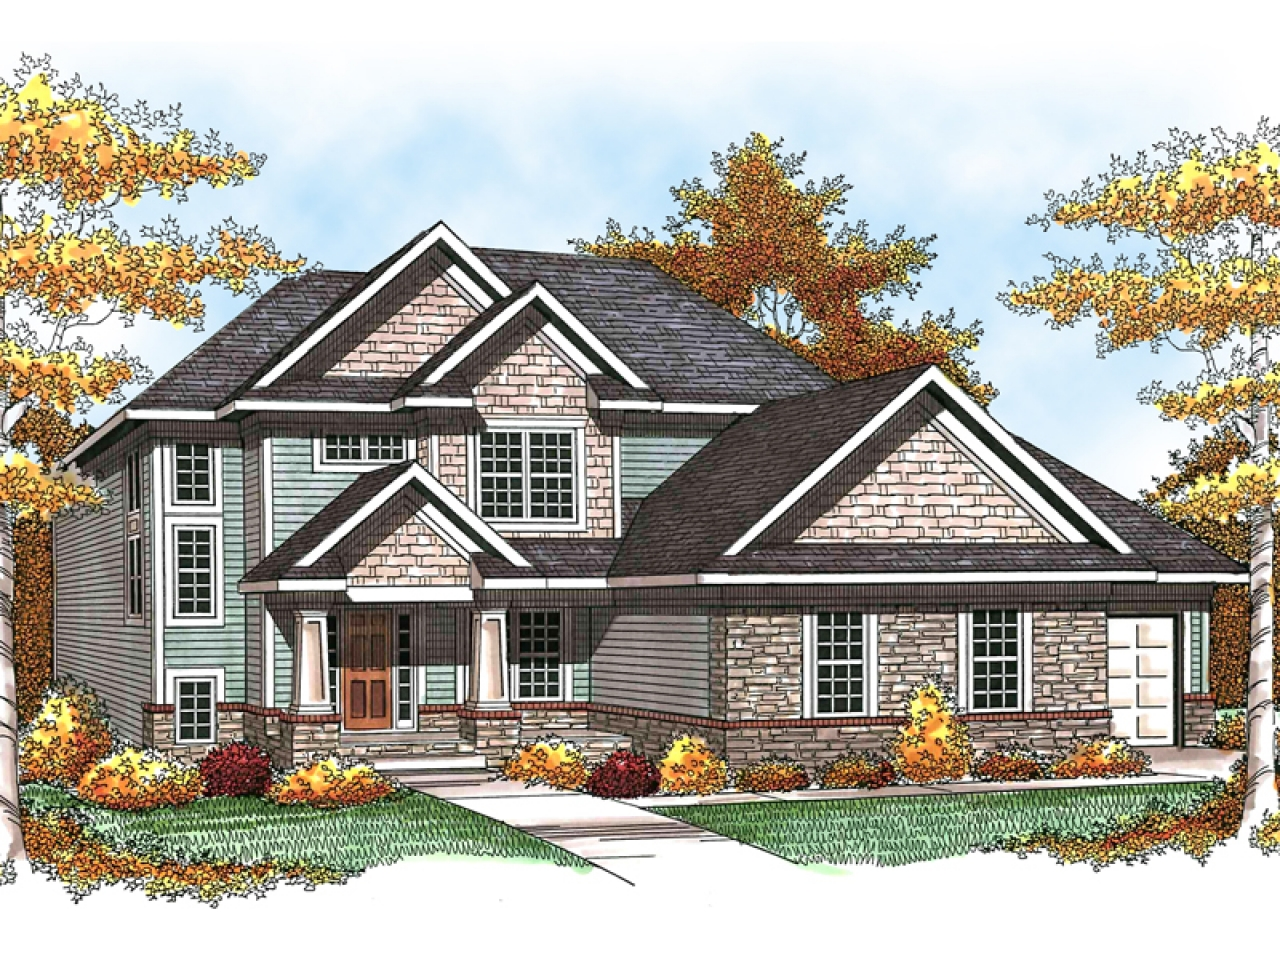 Door And House Color also 115615915409545982 furthermore Exterior Update Help 1960s Yellow Brick Ranch additionally Characteristics Of Modern Farmhouse likewise Lowes Home Exterior Makeover Reveal. on craftsman rambler exterior house colors